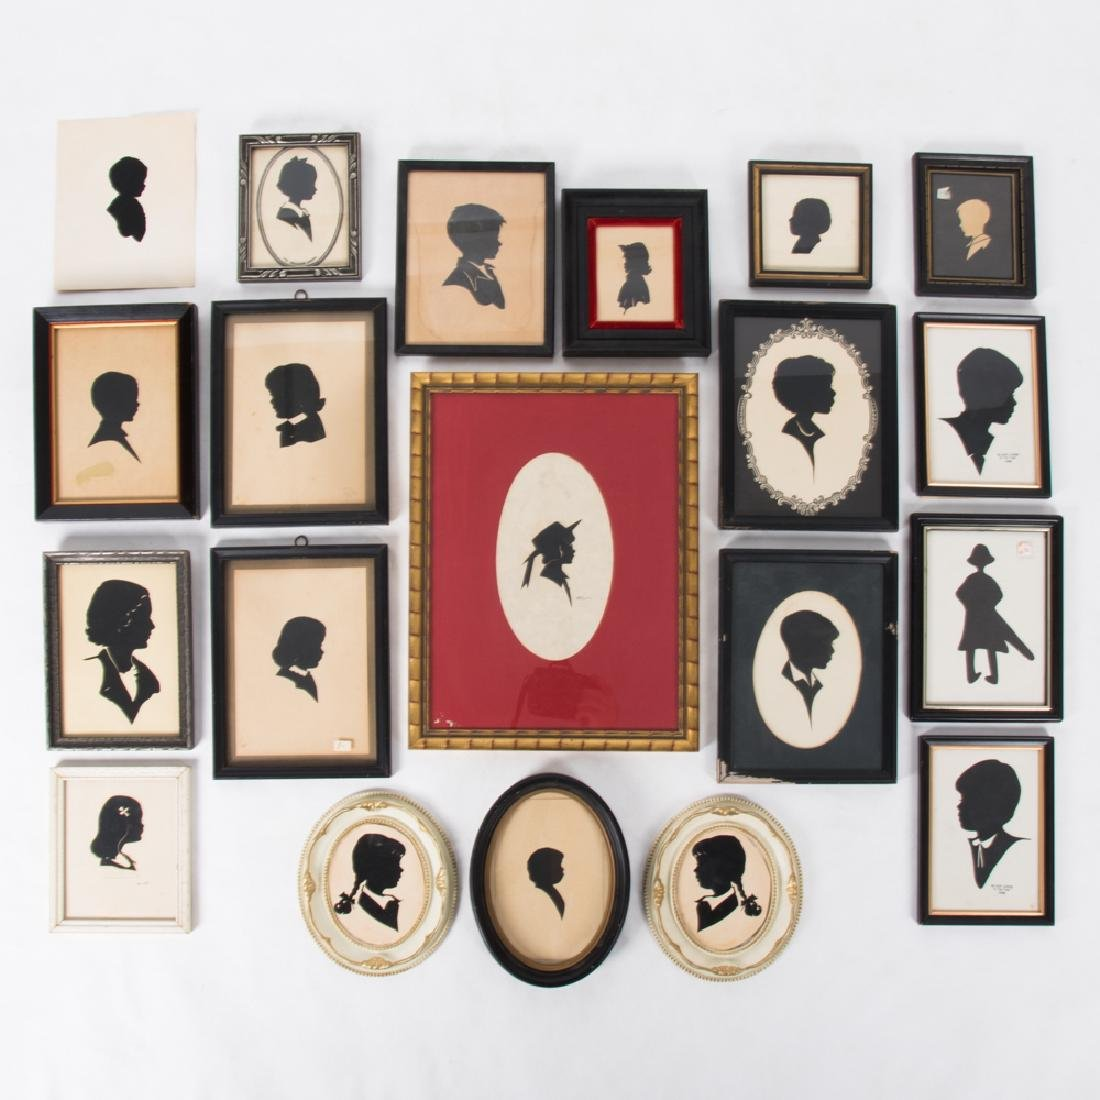 A Collection of Twenty Cut Paper Silhouettes Depicting